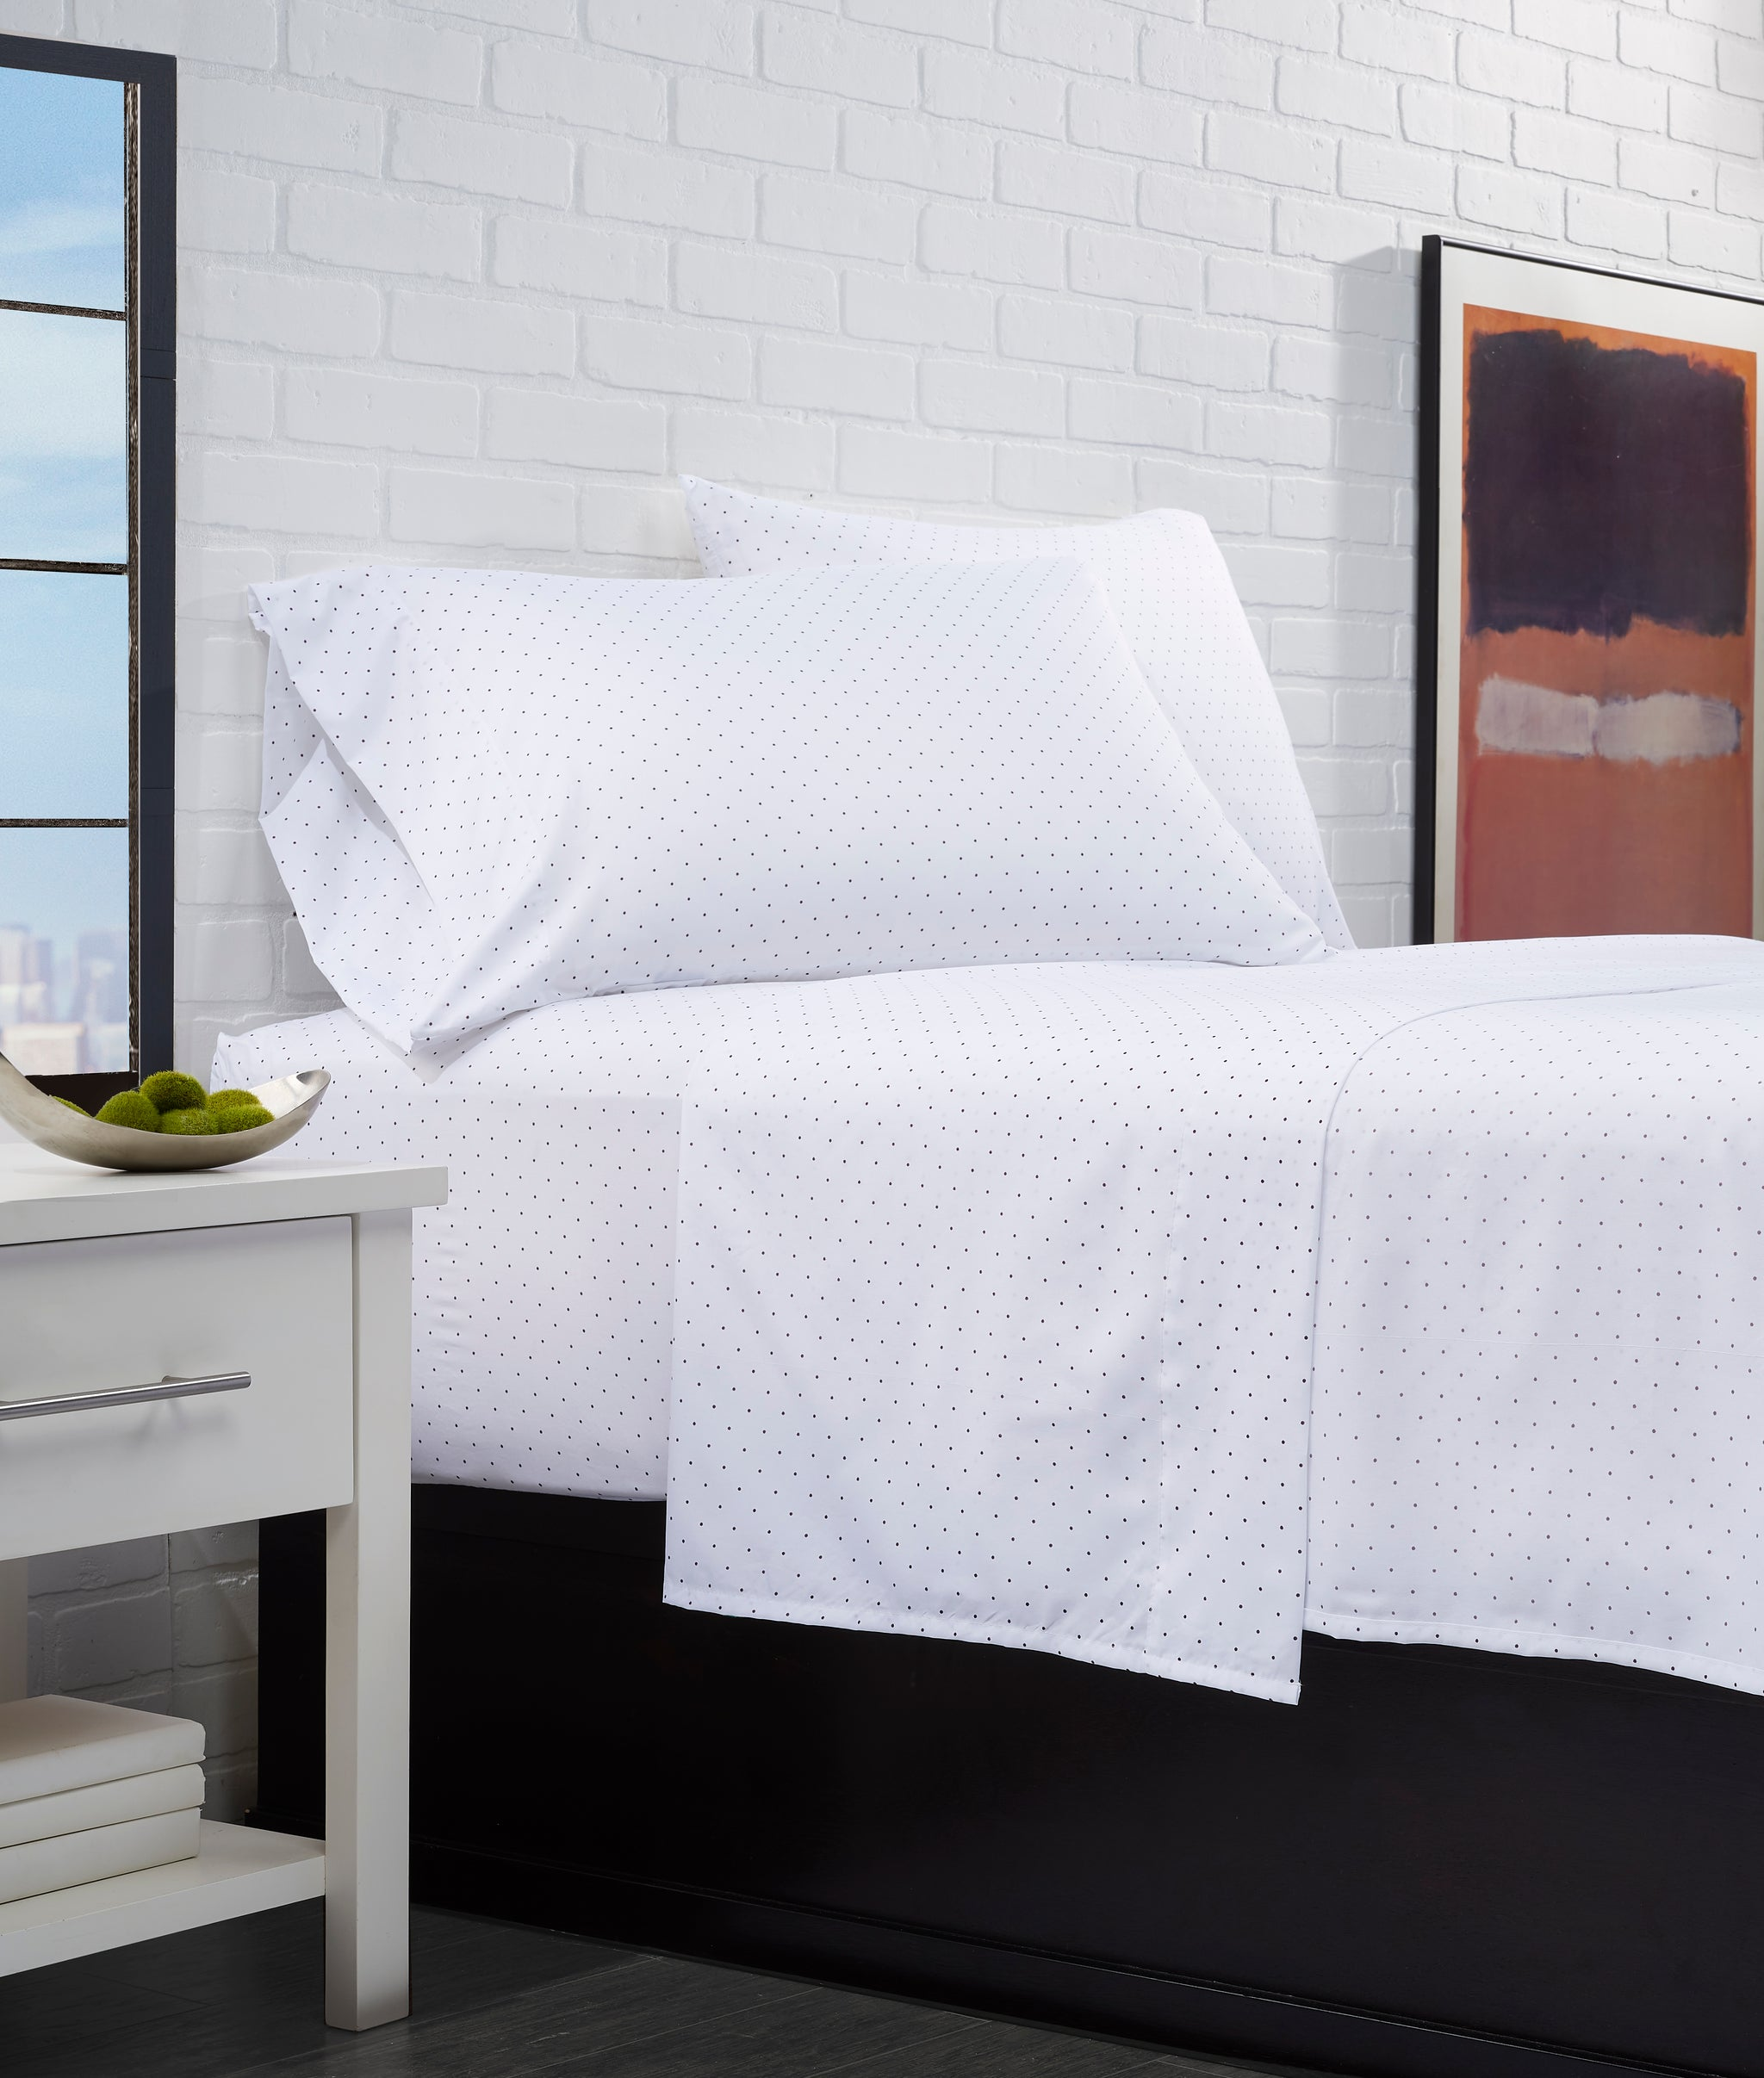 Super Soft Triple Brushed Microfiber 4-Piece Polka Dot Sheet Set